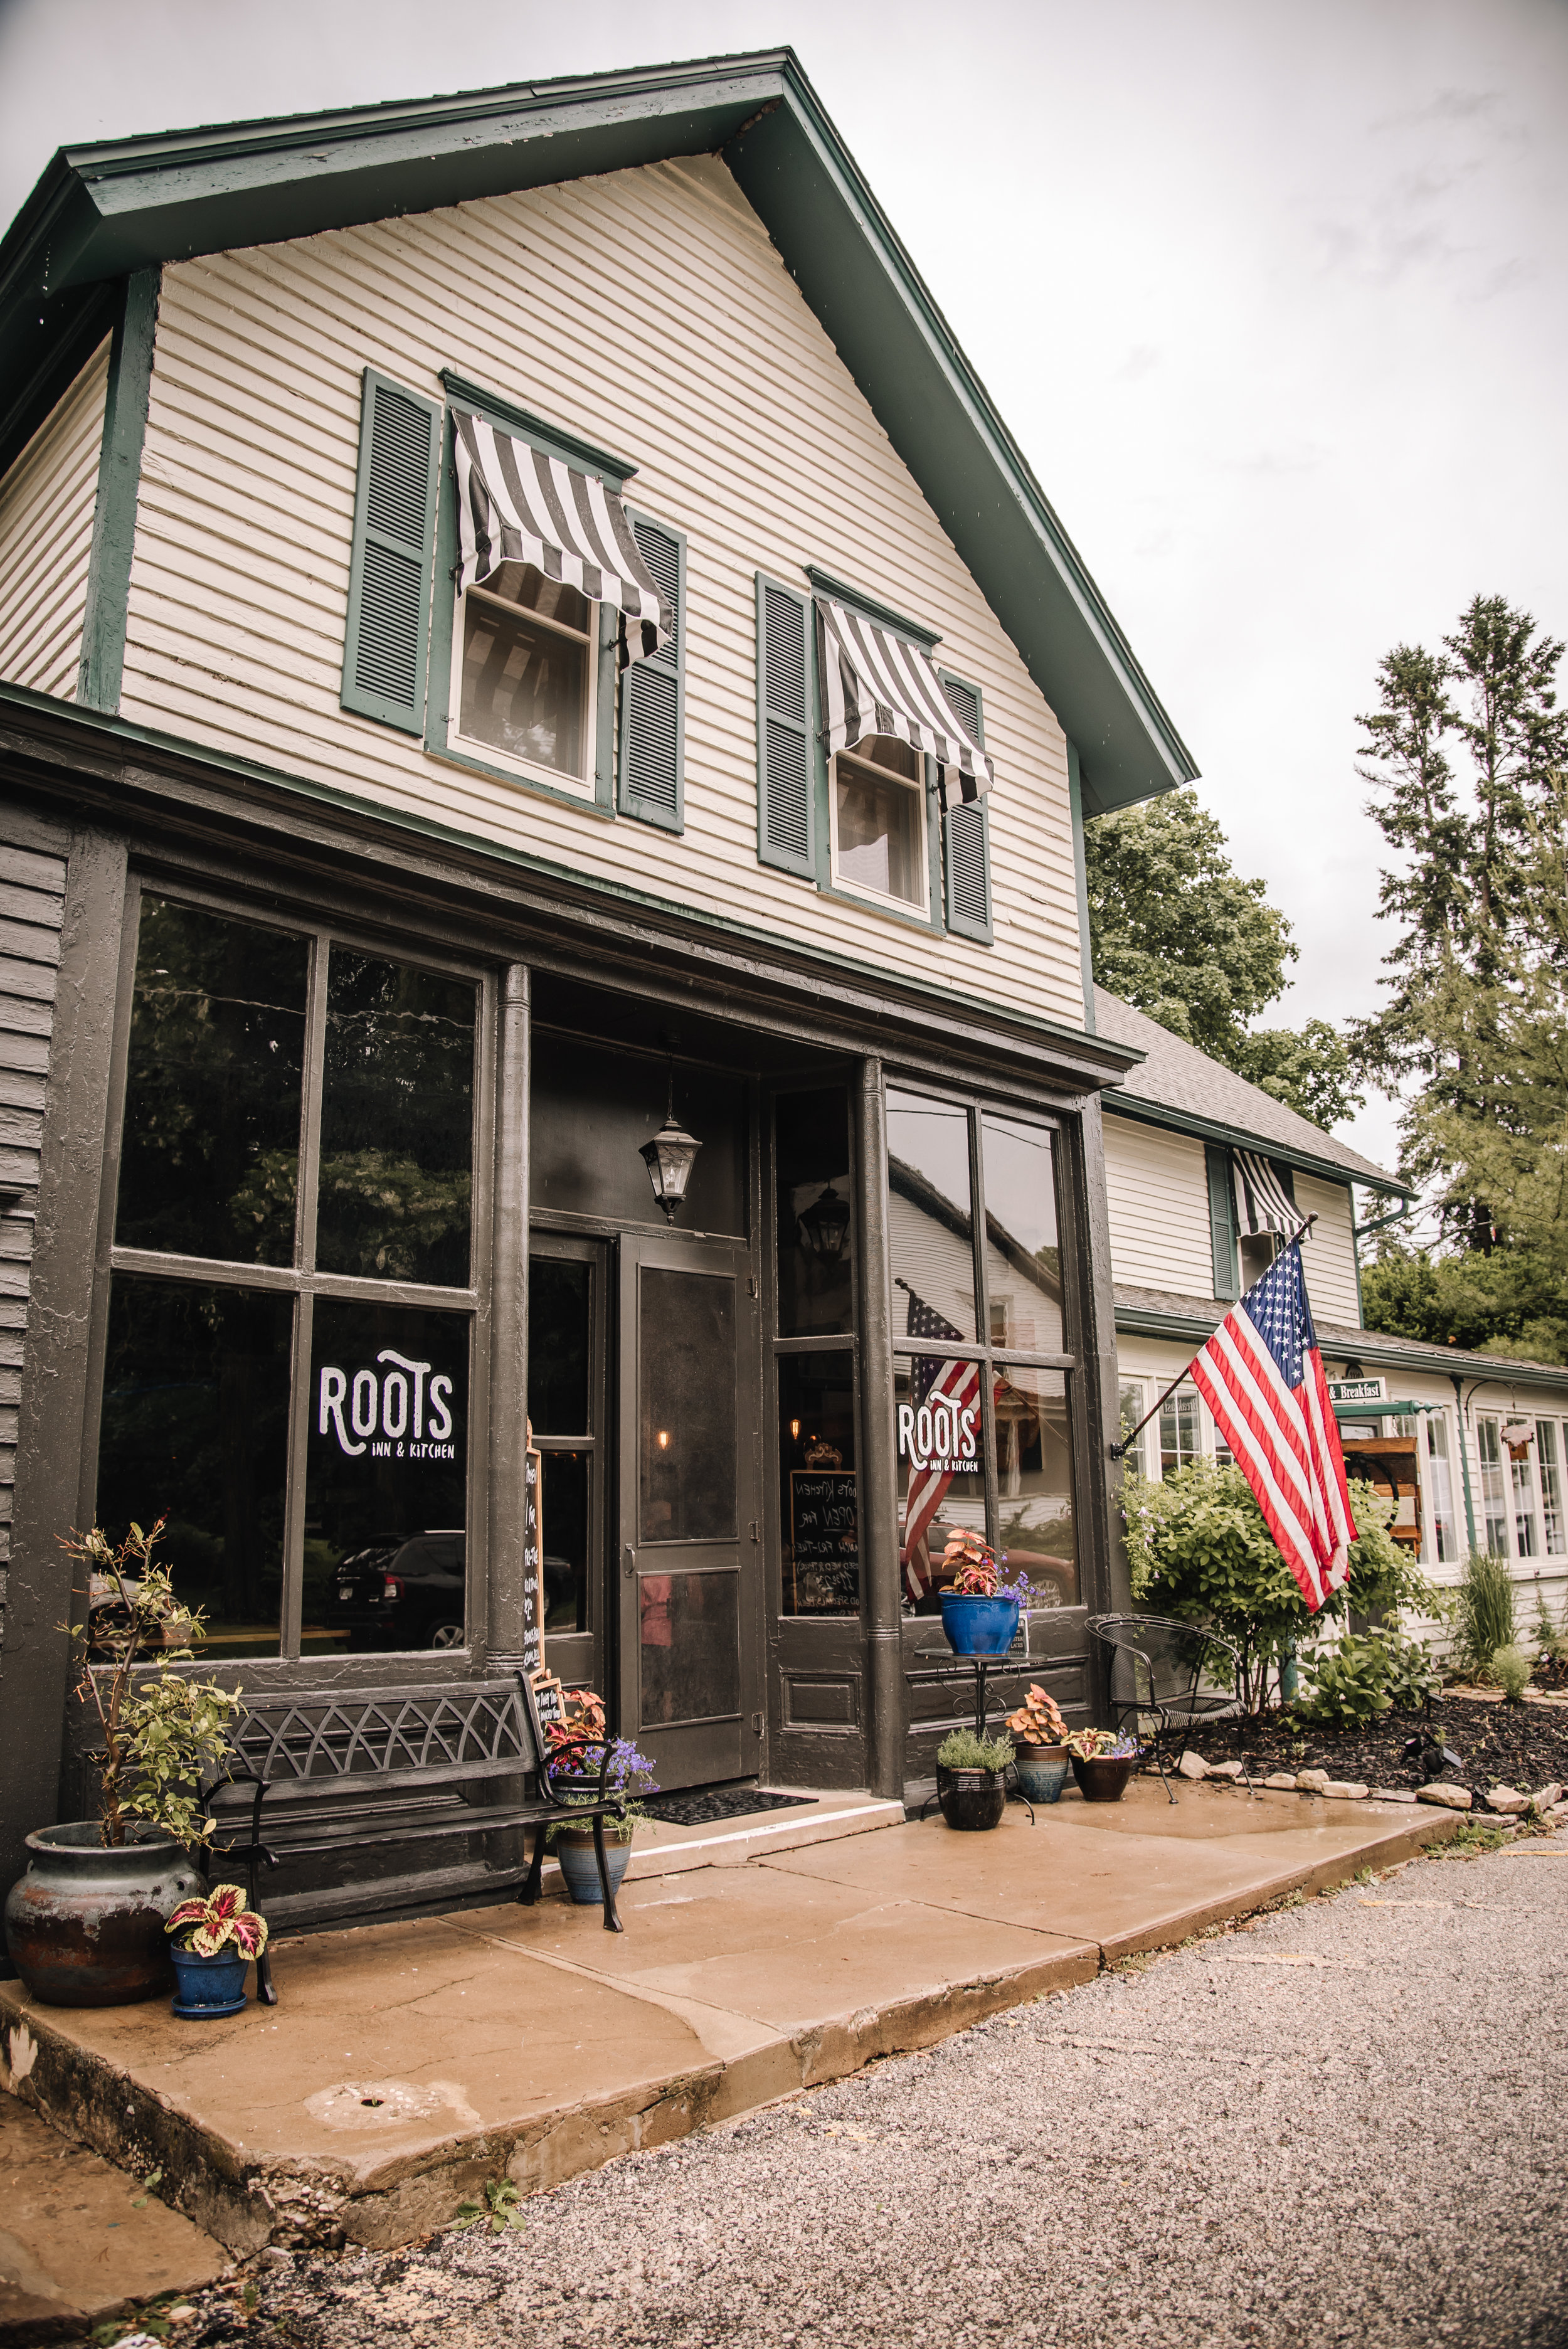 Roots Inn & Kitchen in Sister Bay, WI